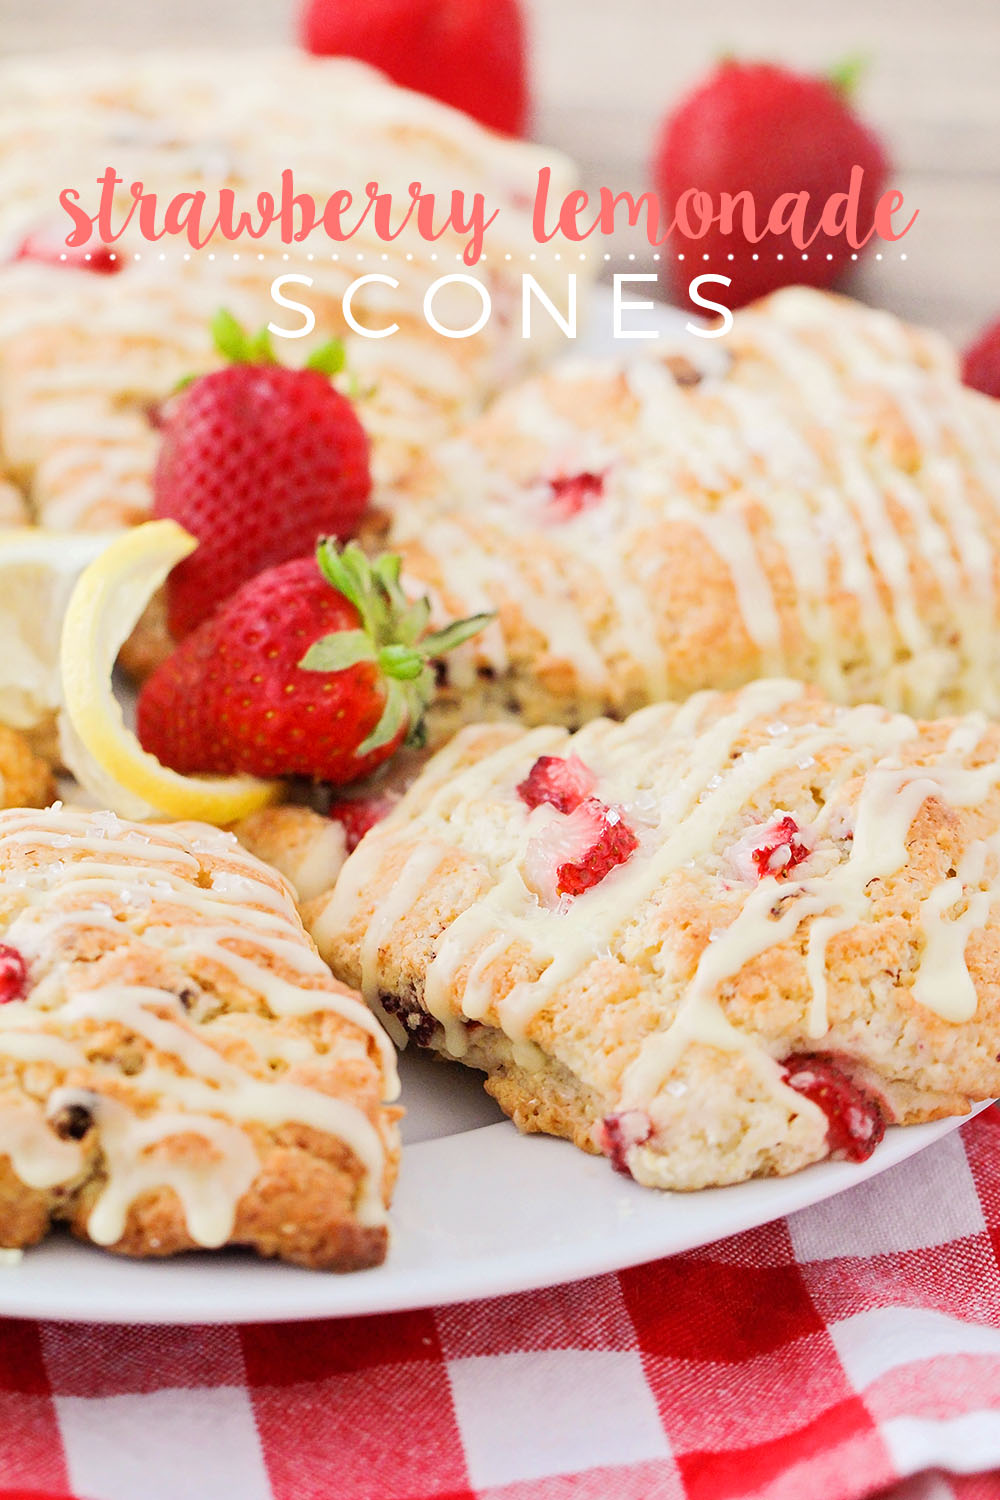 These strawberry lemonade scones taste just like your favorite summertime treat! Delicious strawberry and lemon flavor packed into light and tender scones.